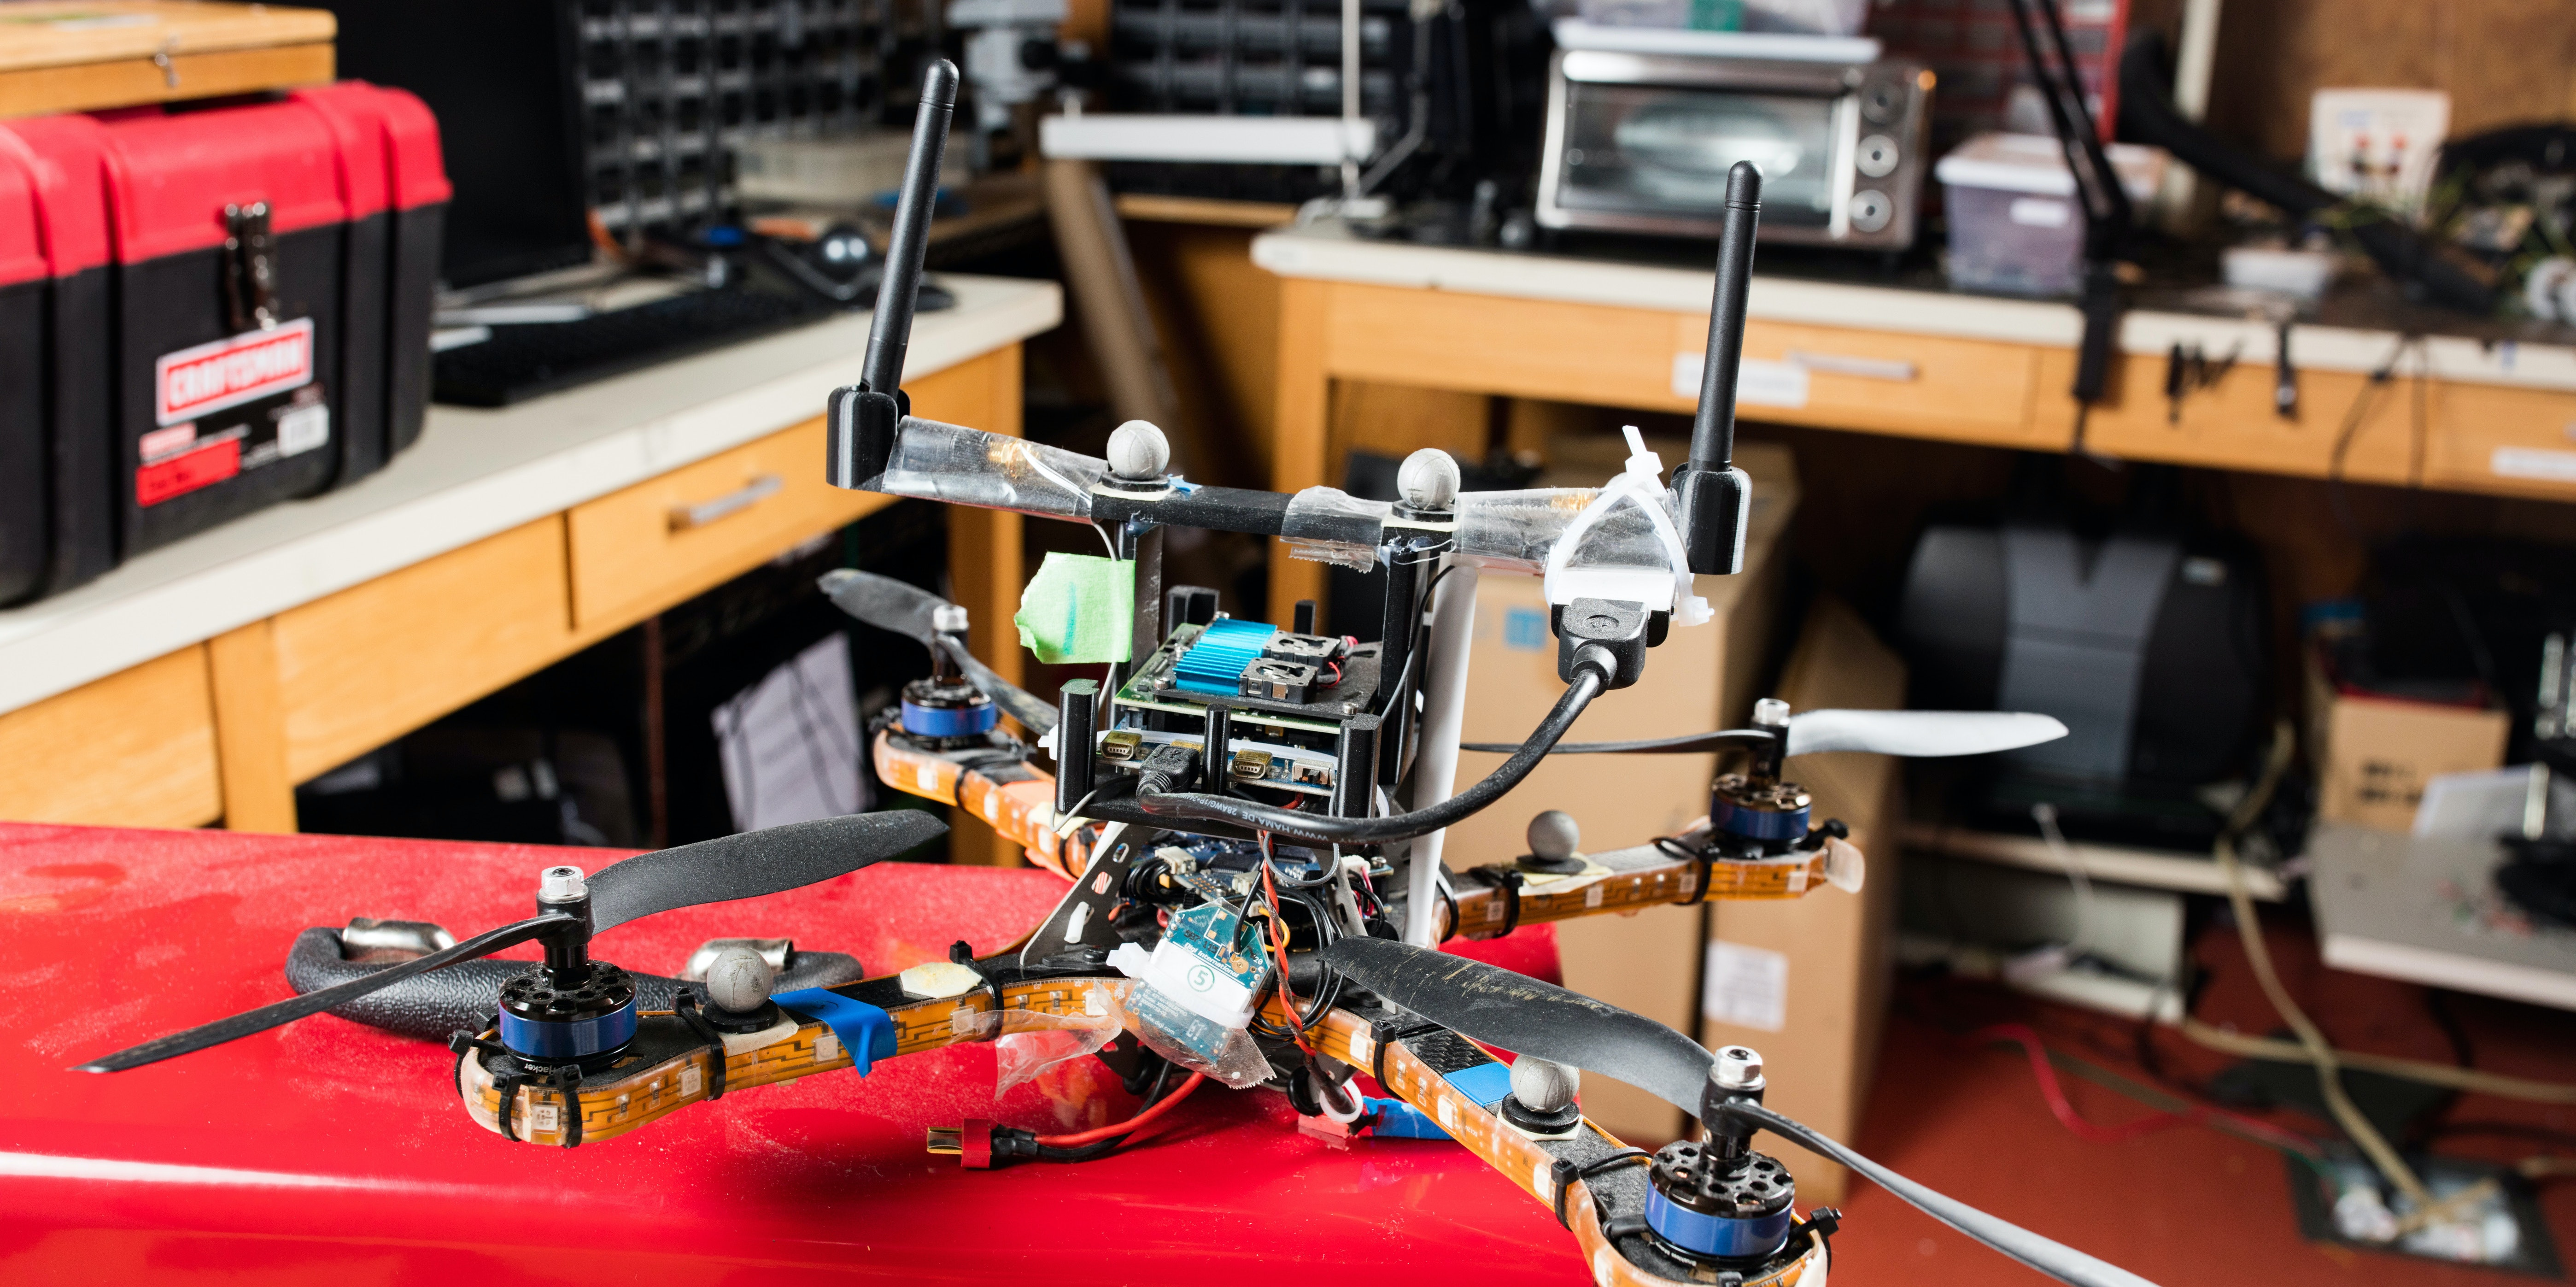 This MIT research drone has a new anti-spoofing algorithm to protect it.